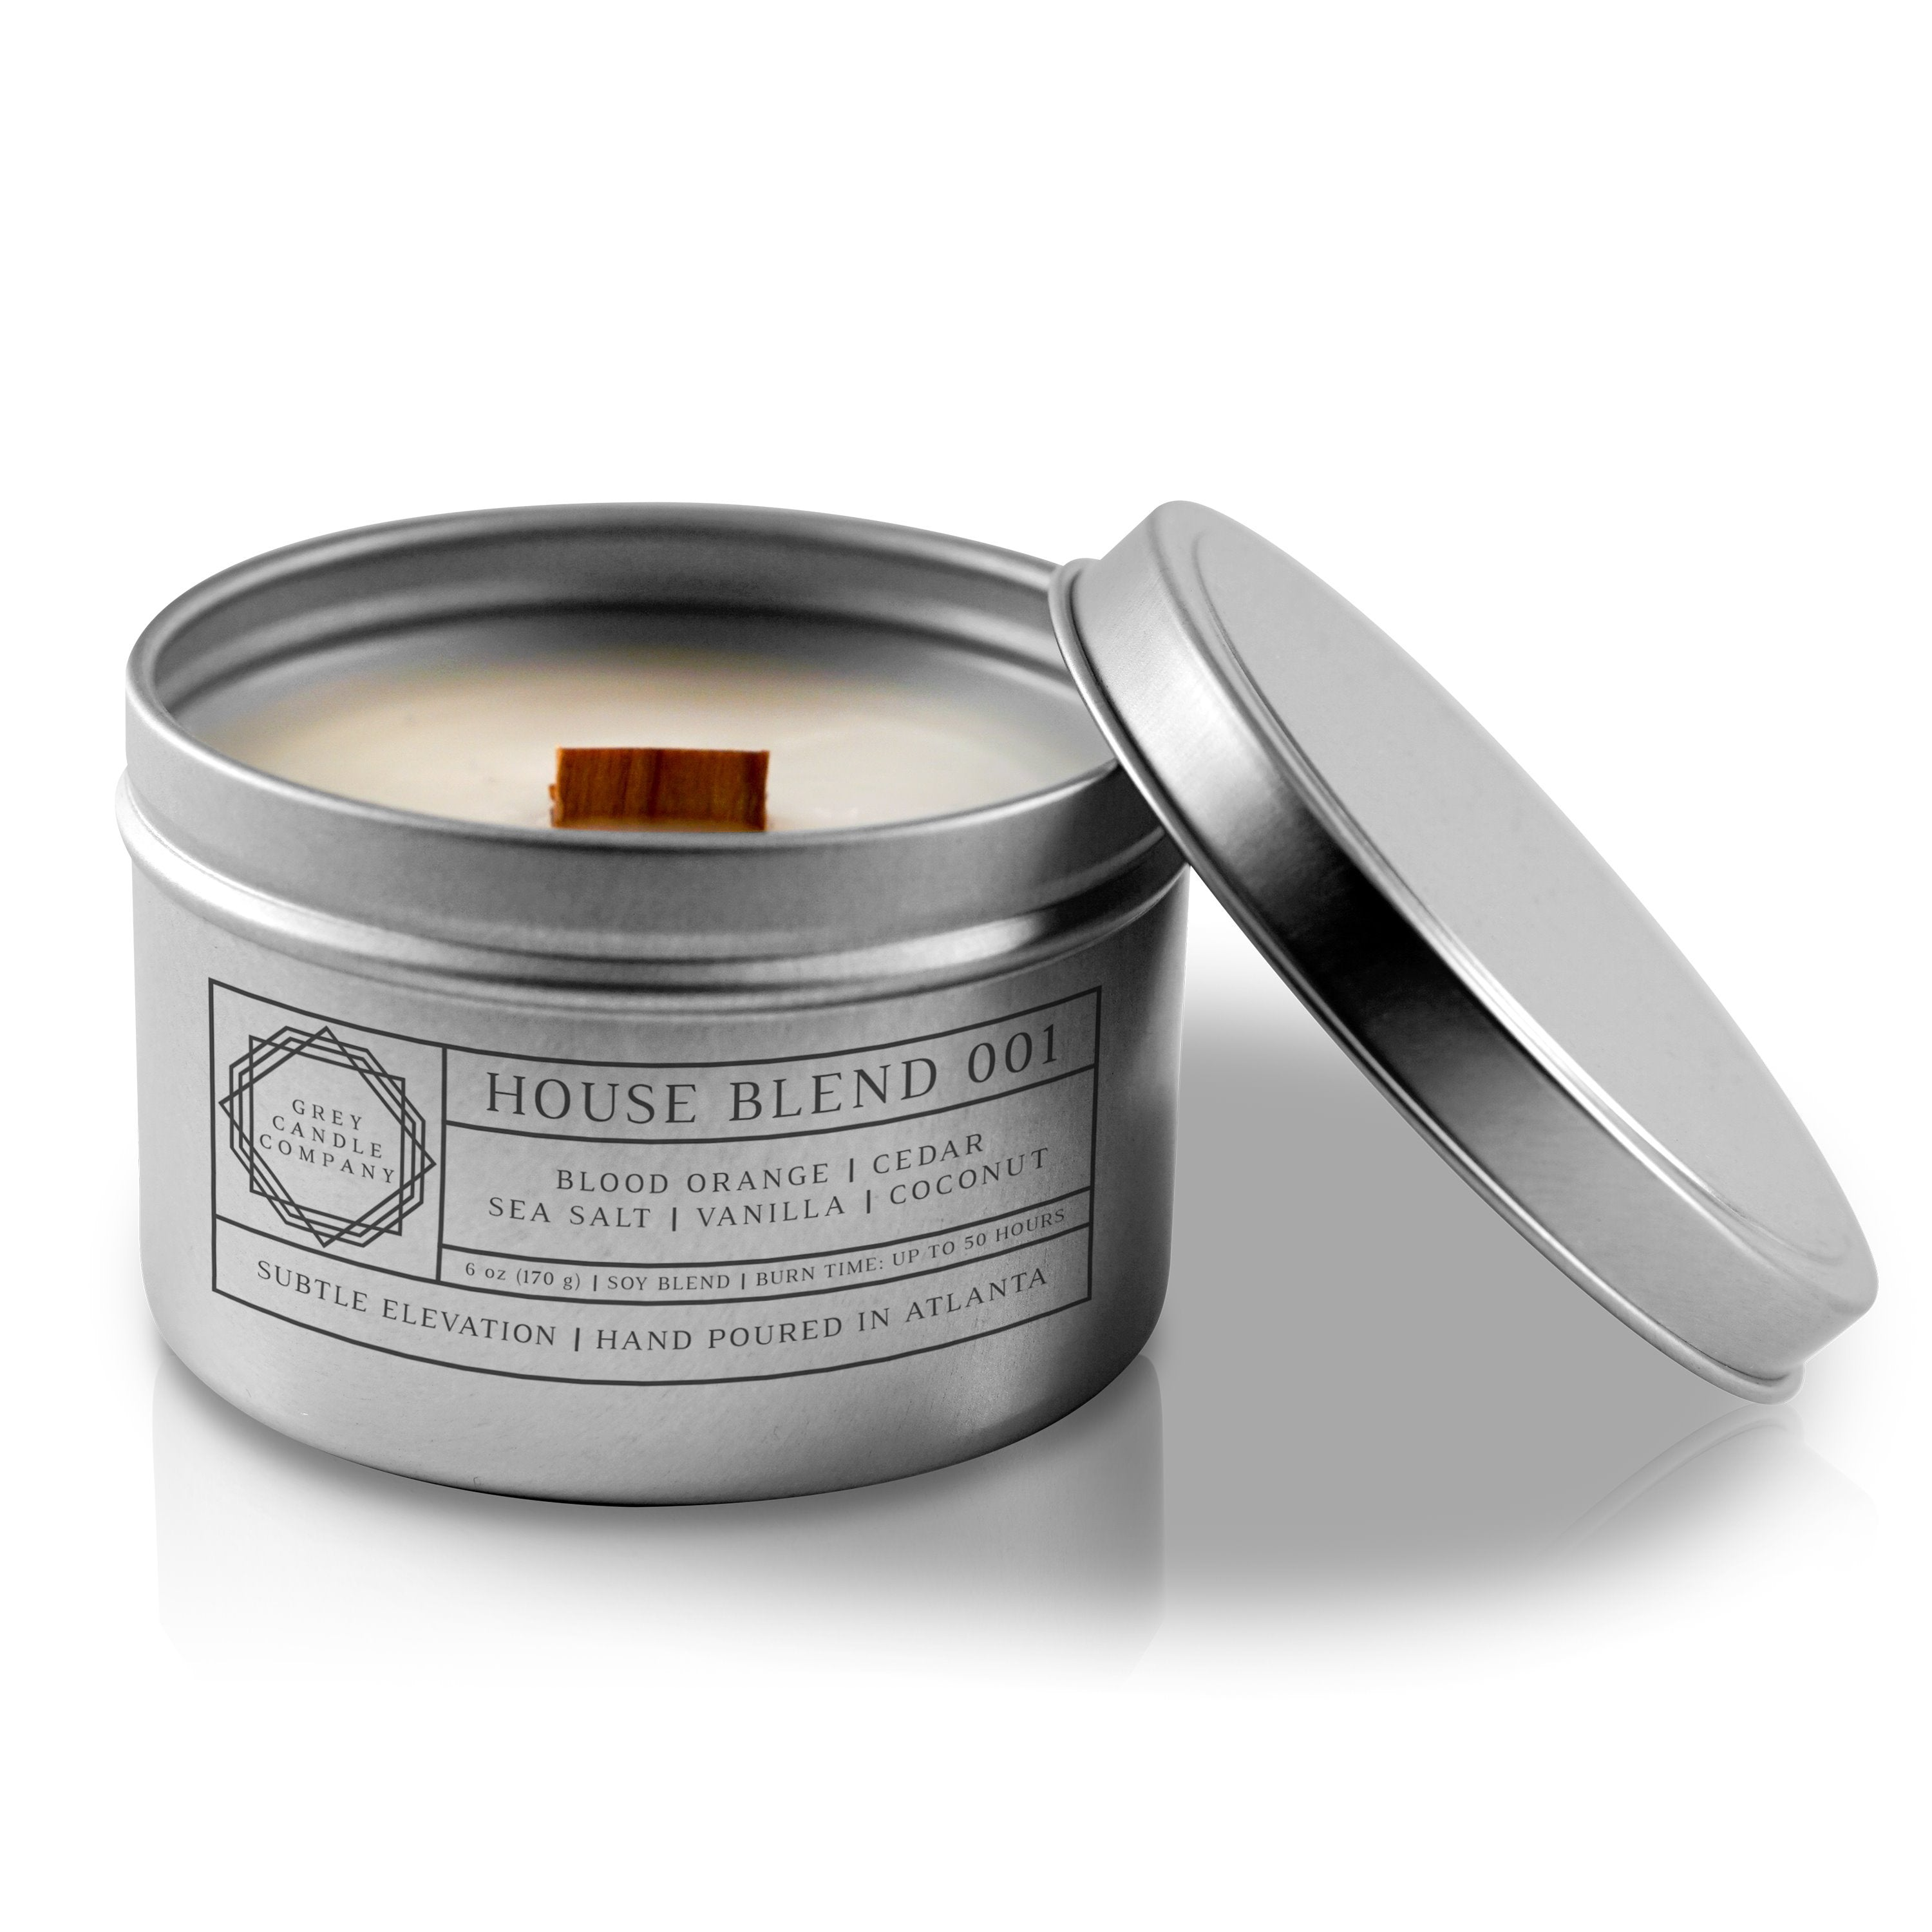 HOUSE BLEND 001 CANDLES Grey Candle Company 6 oz. TIN